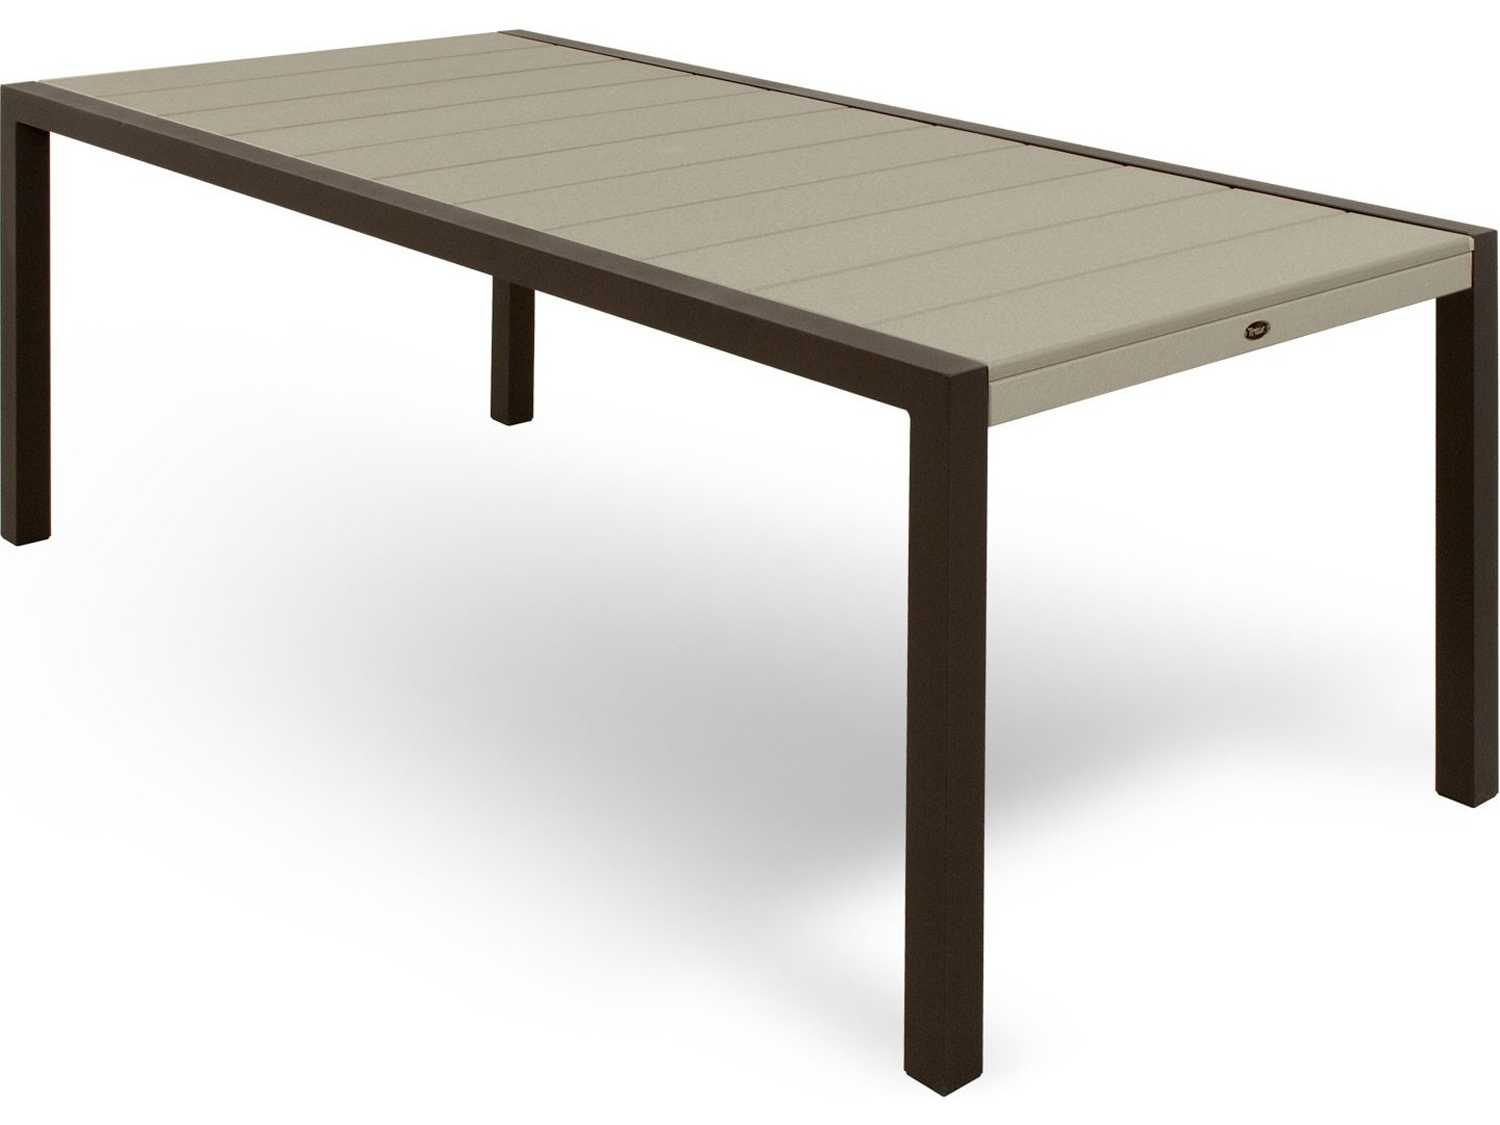 Surf City Recycled Plastic 73 X 36 Rectangular Dining Table TX8310